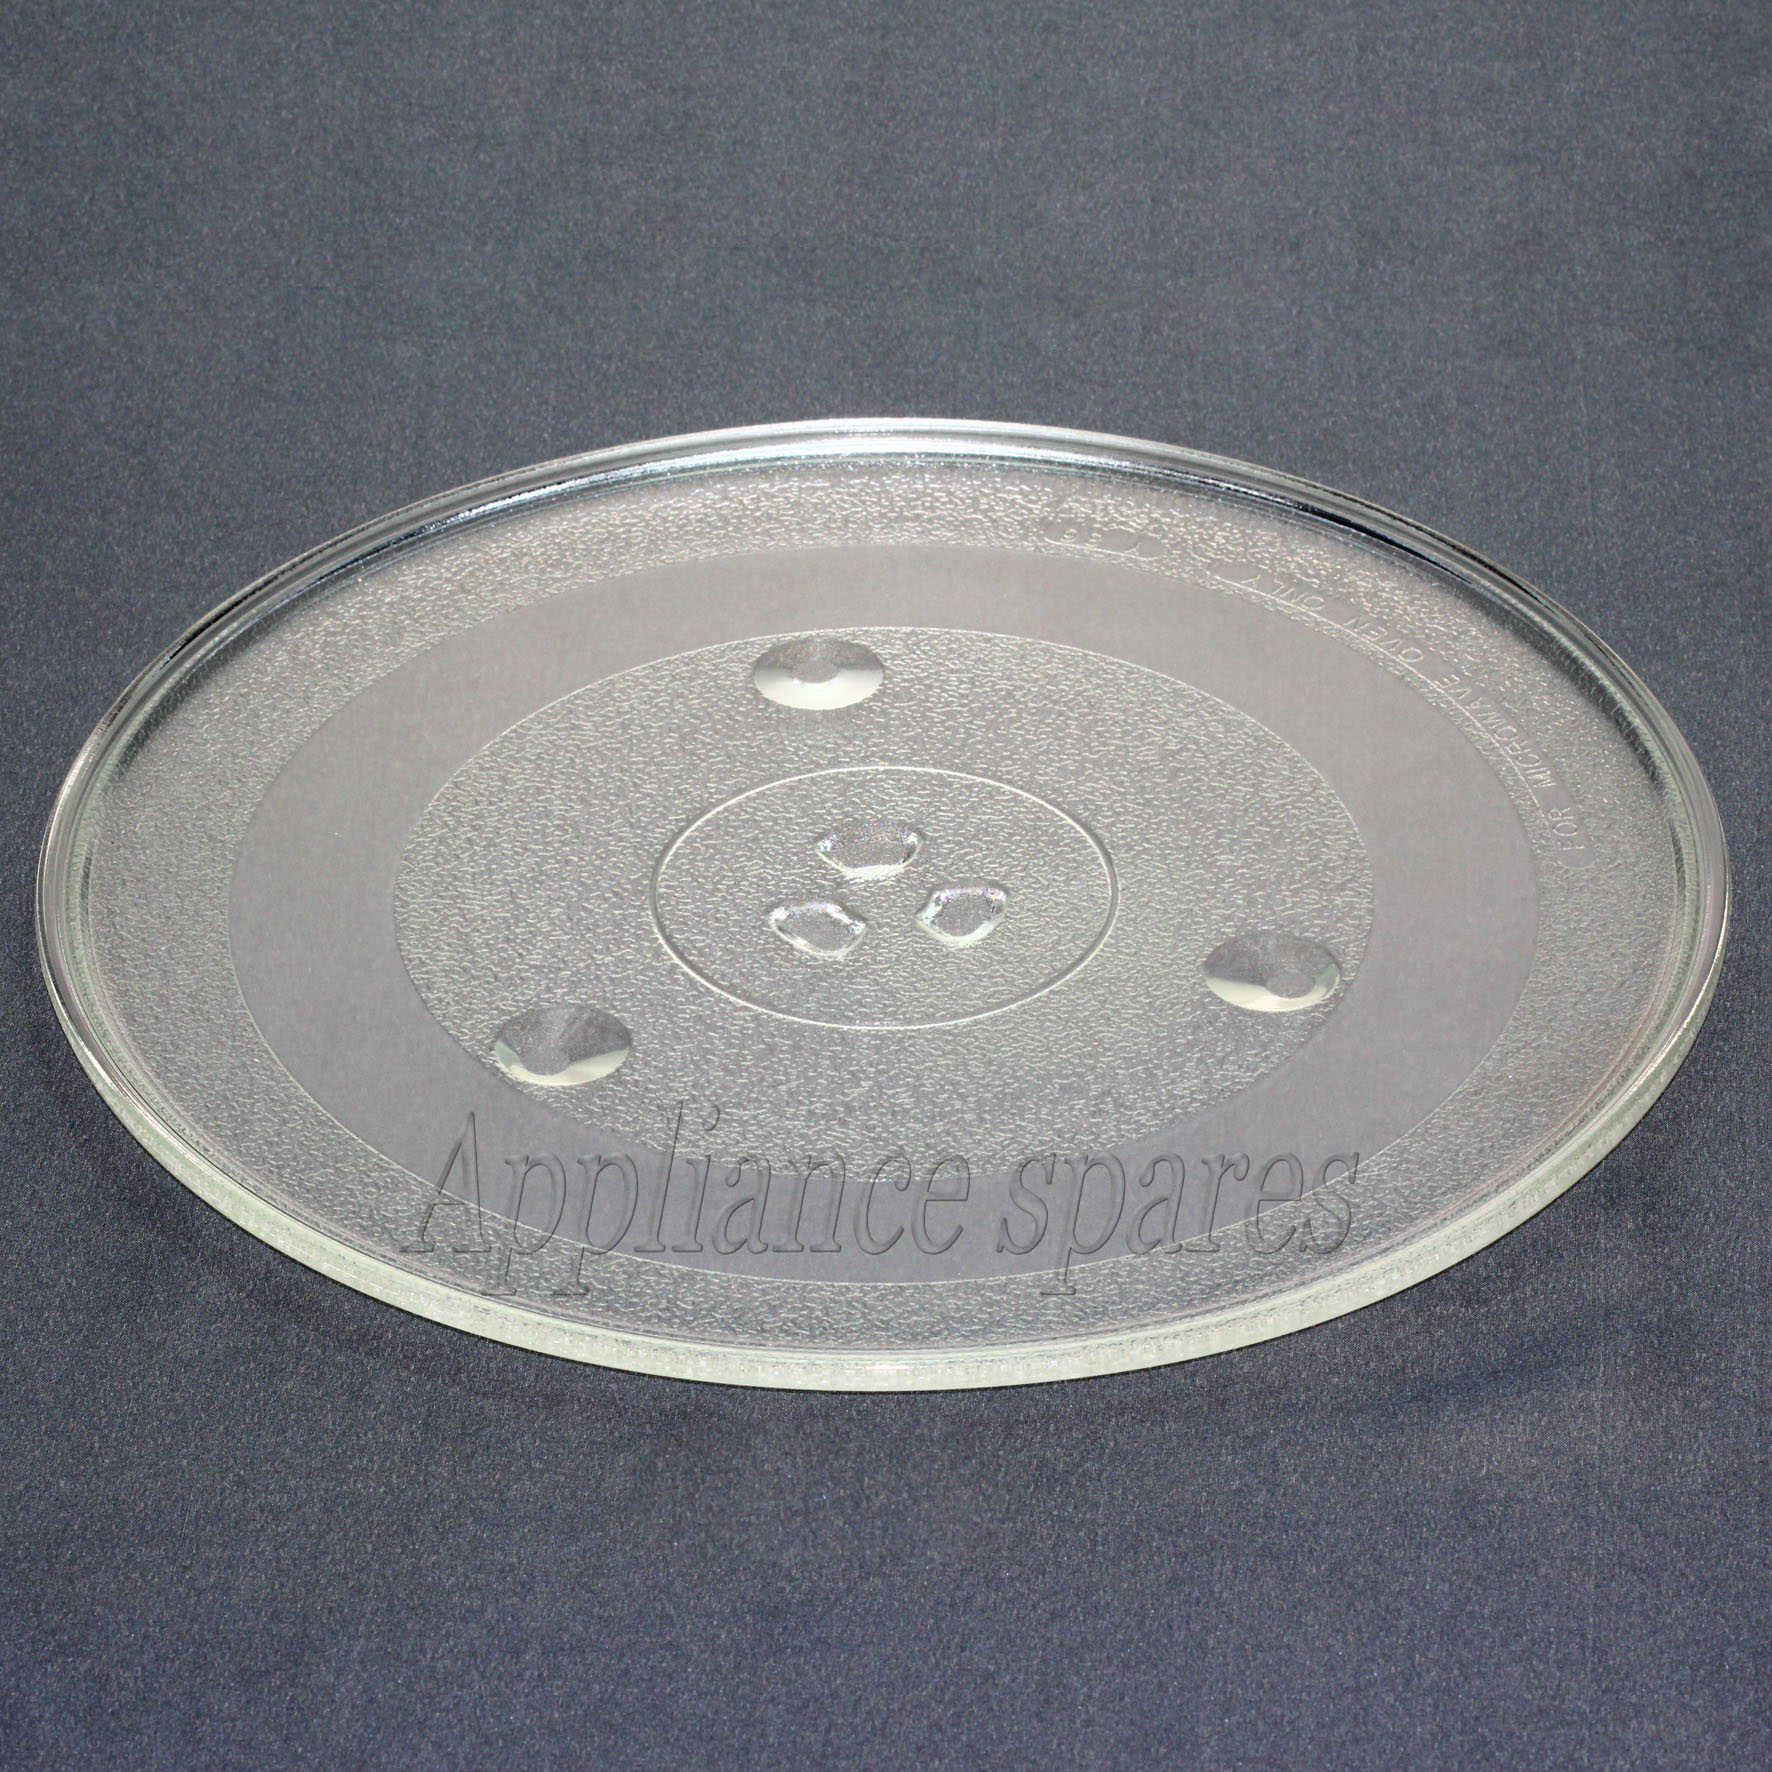 Kelvinator Microwave Oven Gl Plate 36cm Lategan And Van Biljoens Liance Spares Parts Accessories